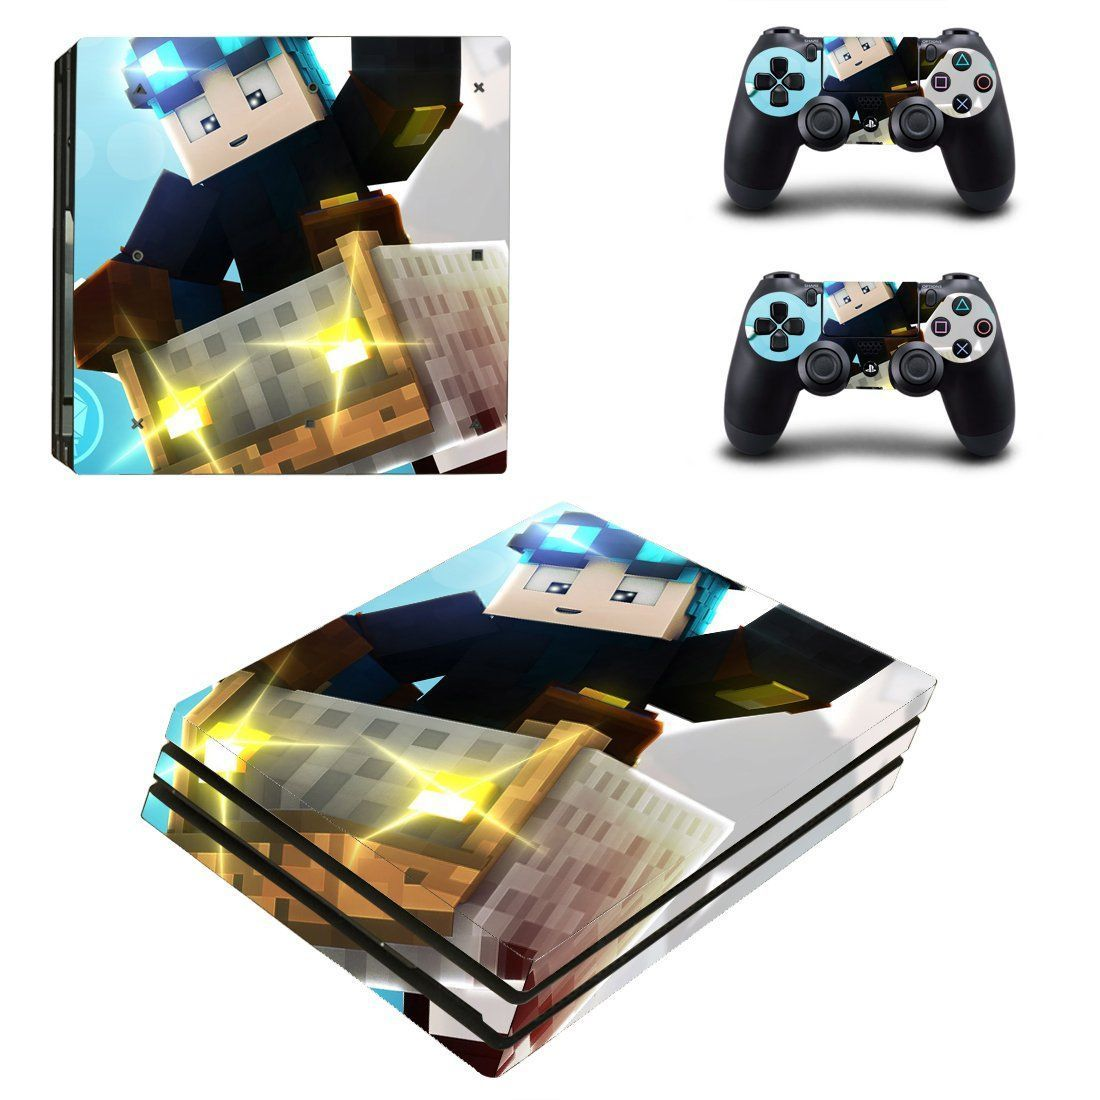 Minecraft Ps4 Pro Edition Skin Decal For Console And